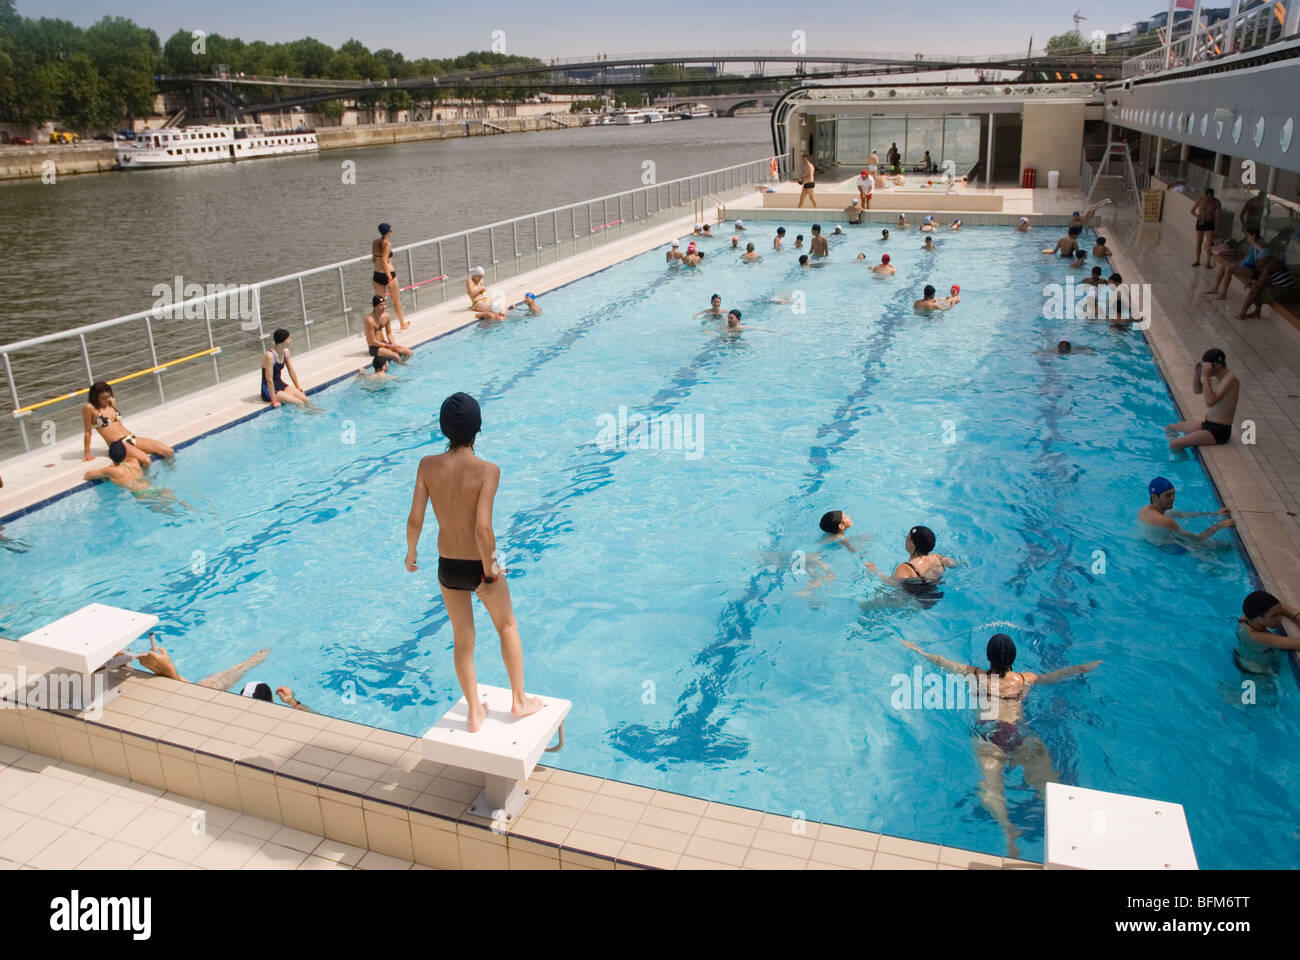 Piscine Josephine Baker Floating Swimming Pool In The Seine Paris Stock Photo Royalty Free